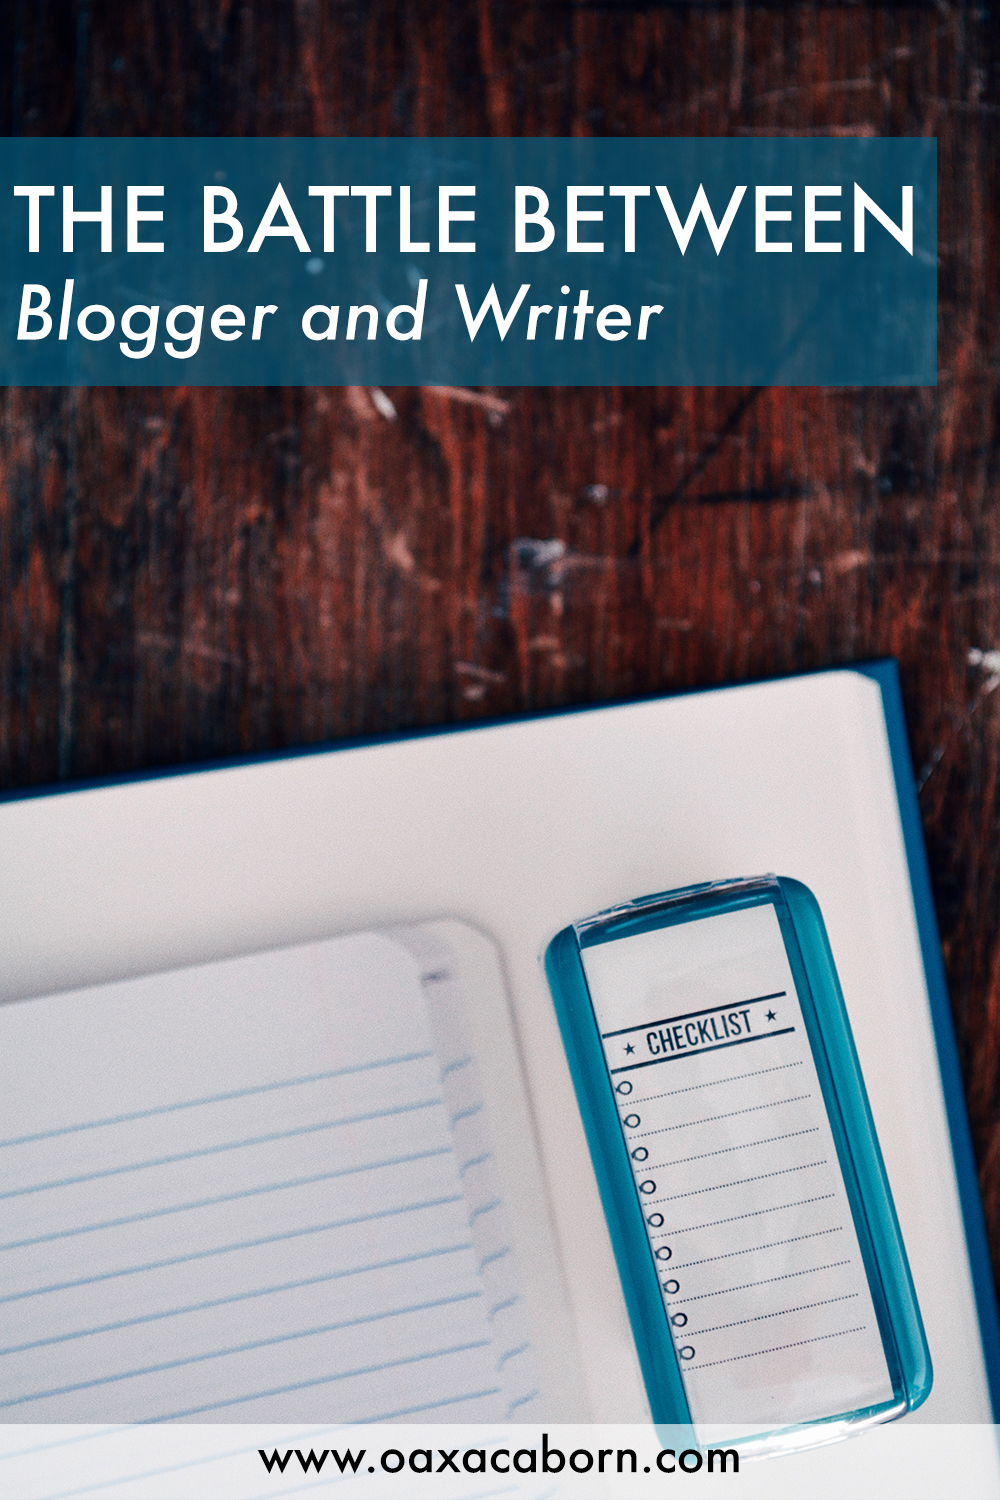 The Battle Between Blogger and Writer